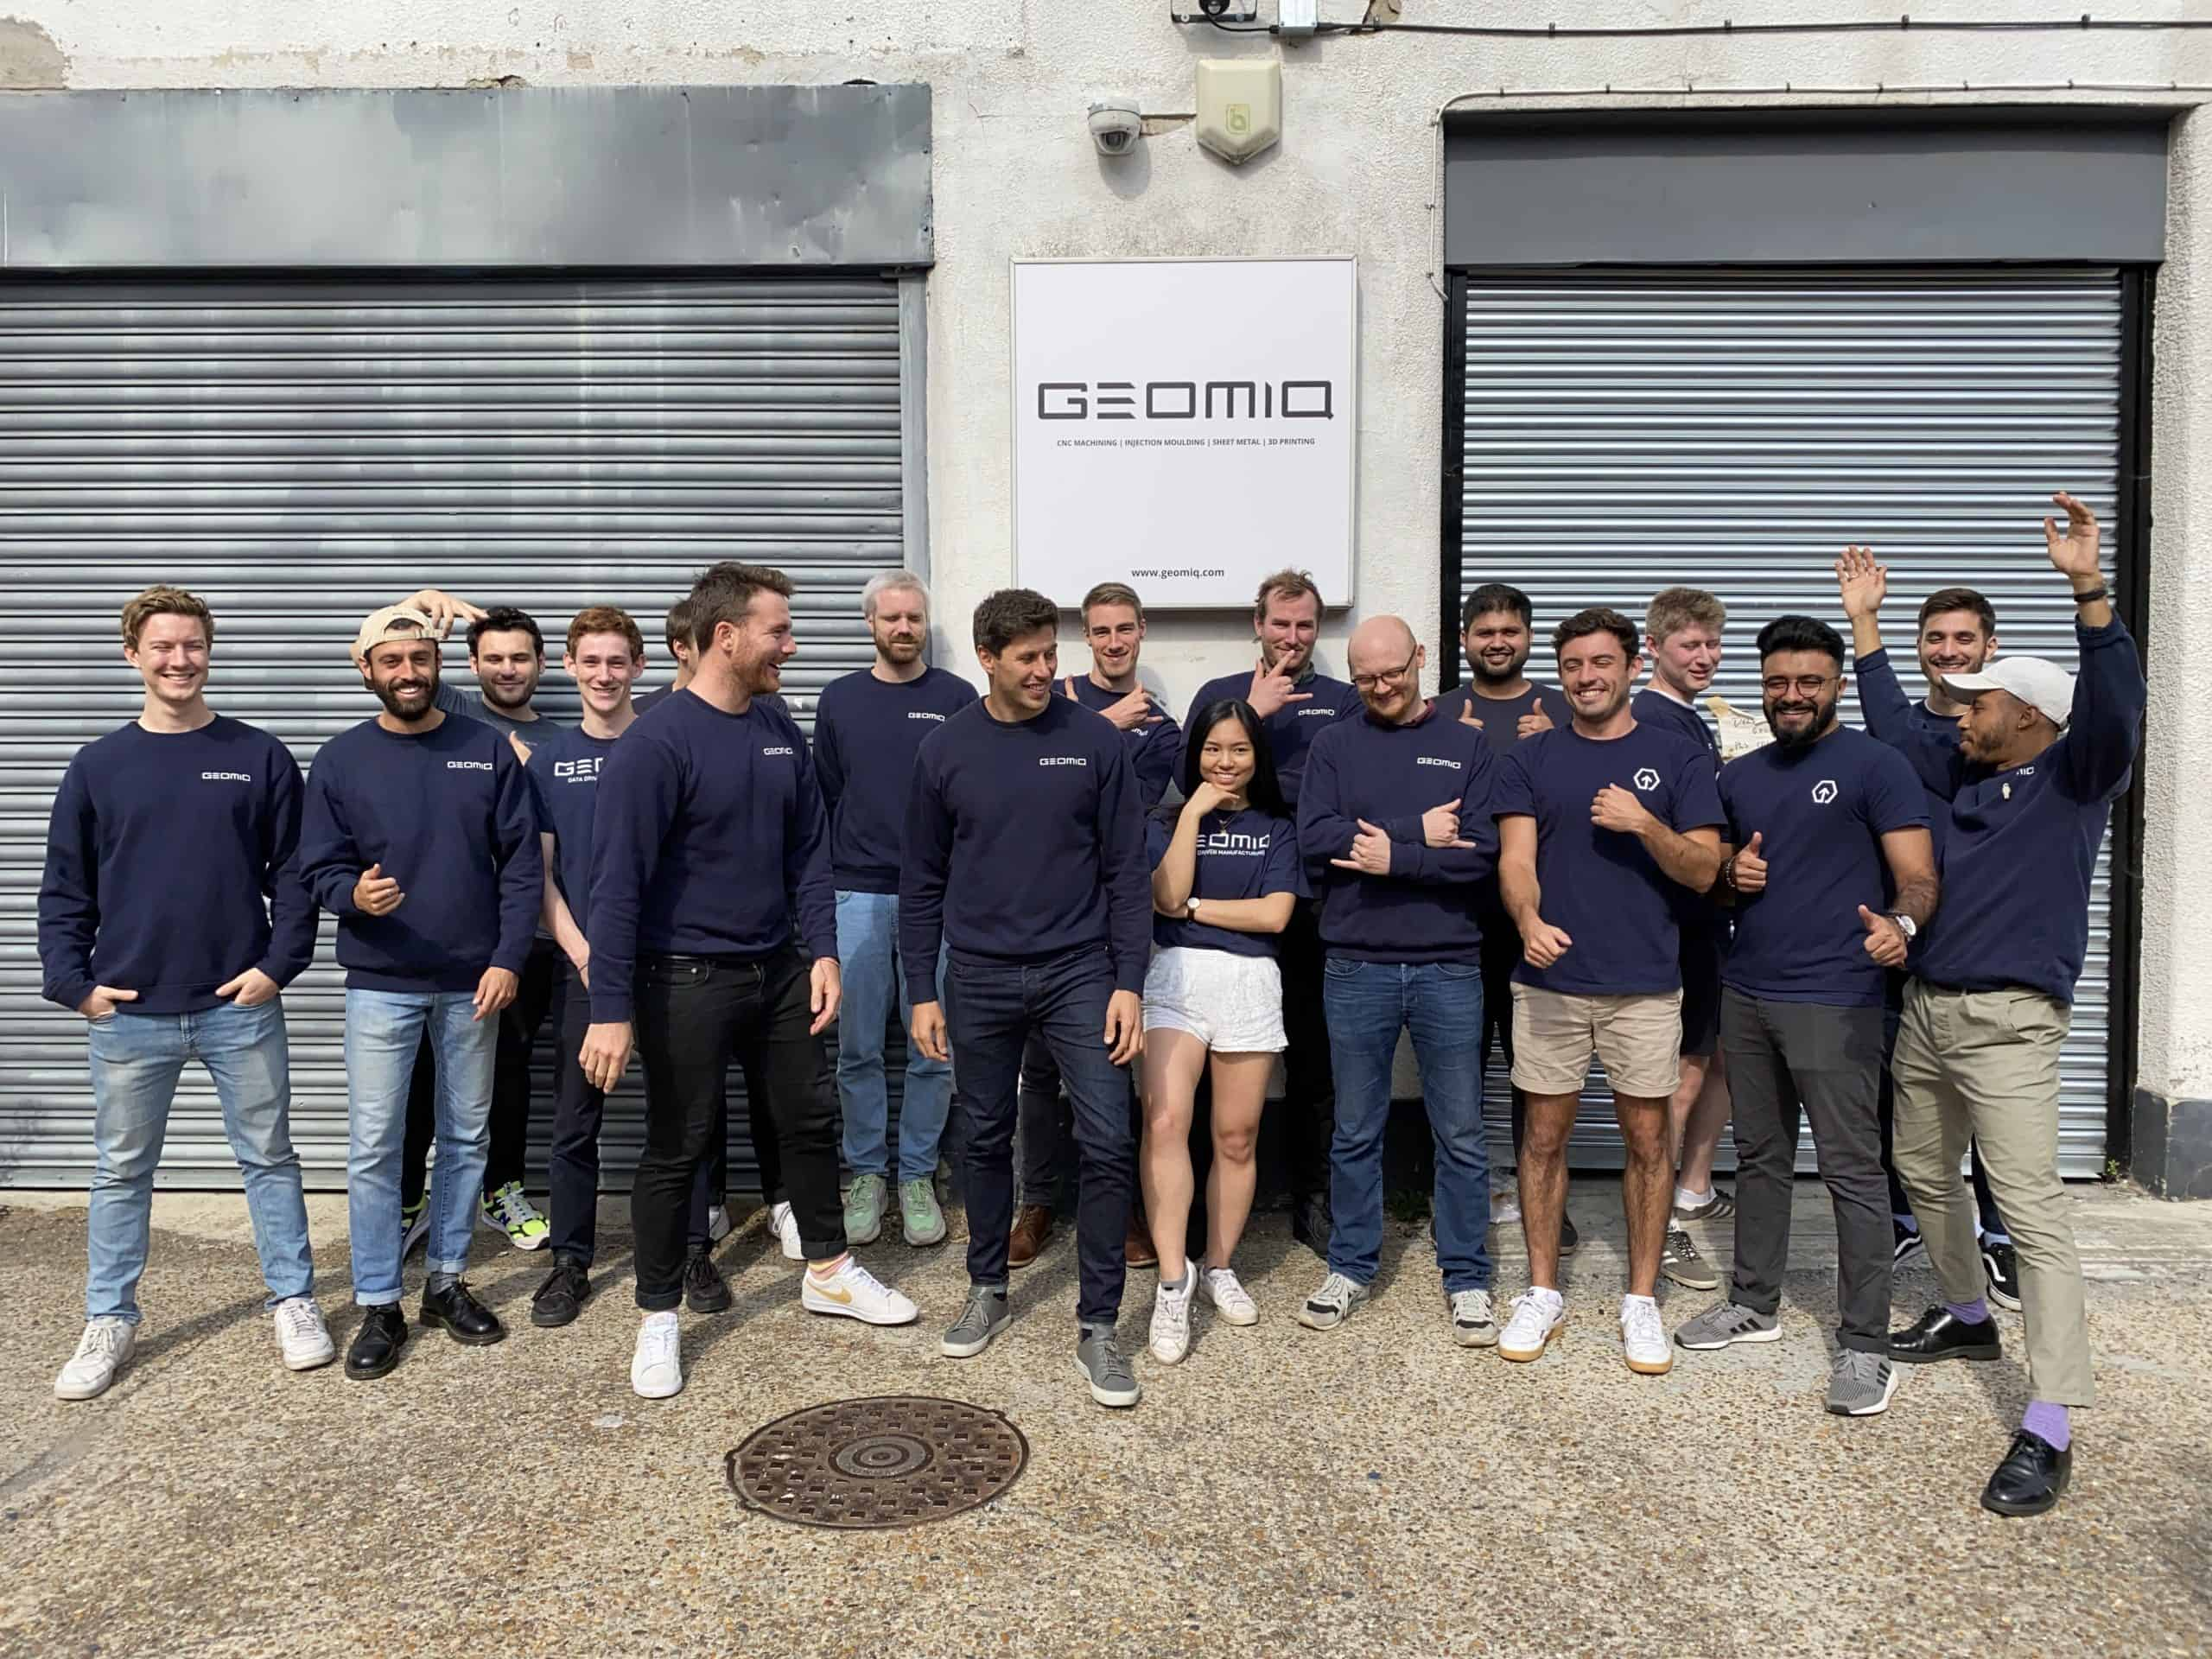 Geomiq Team outside of the office